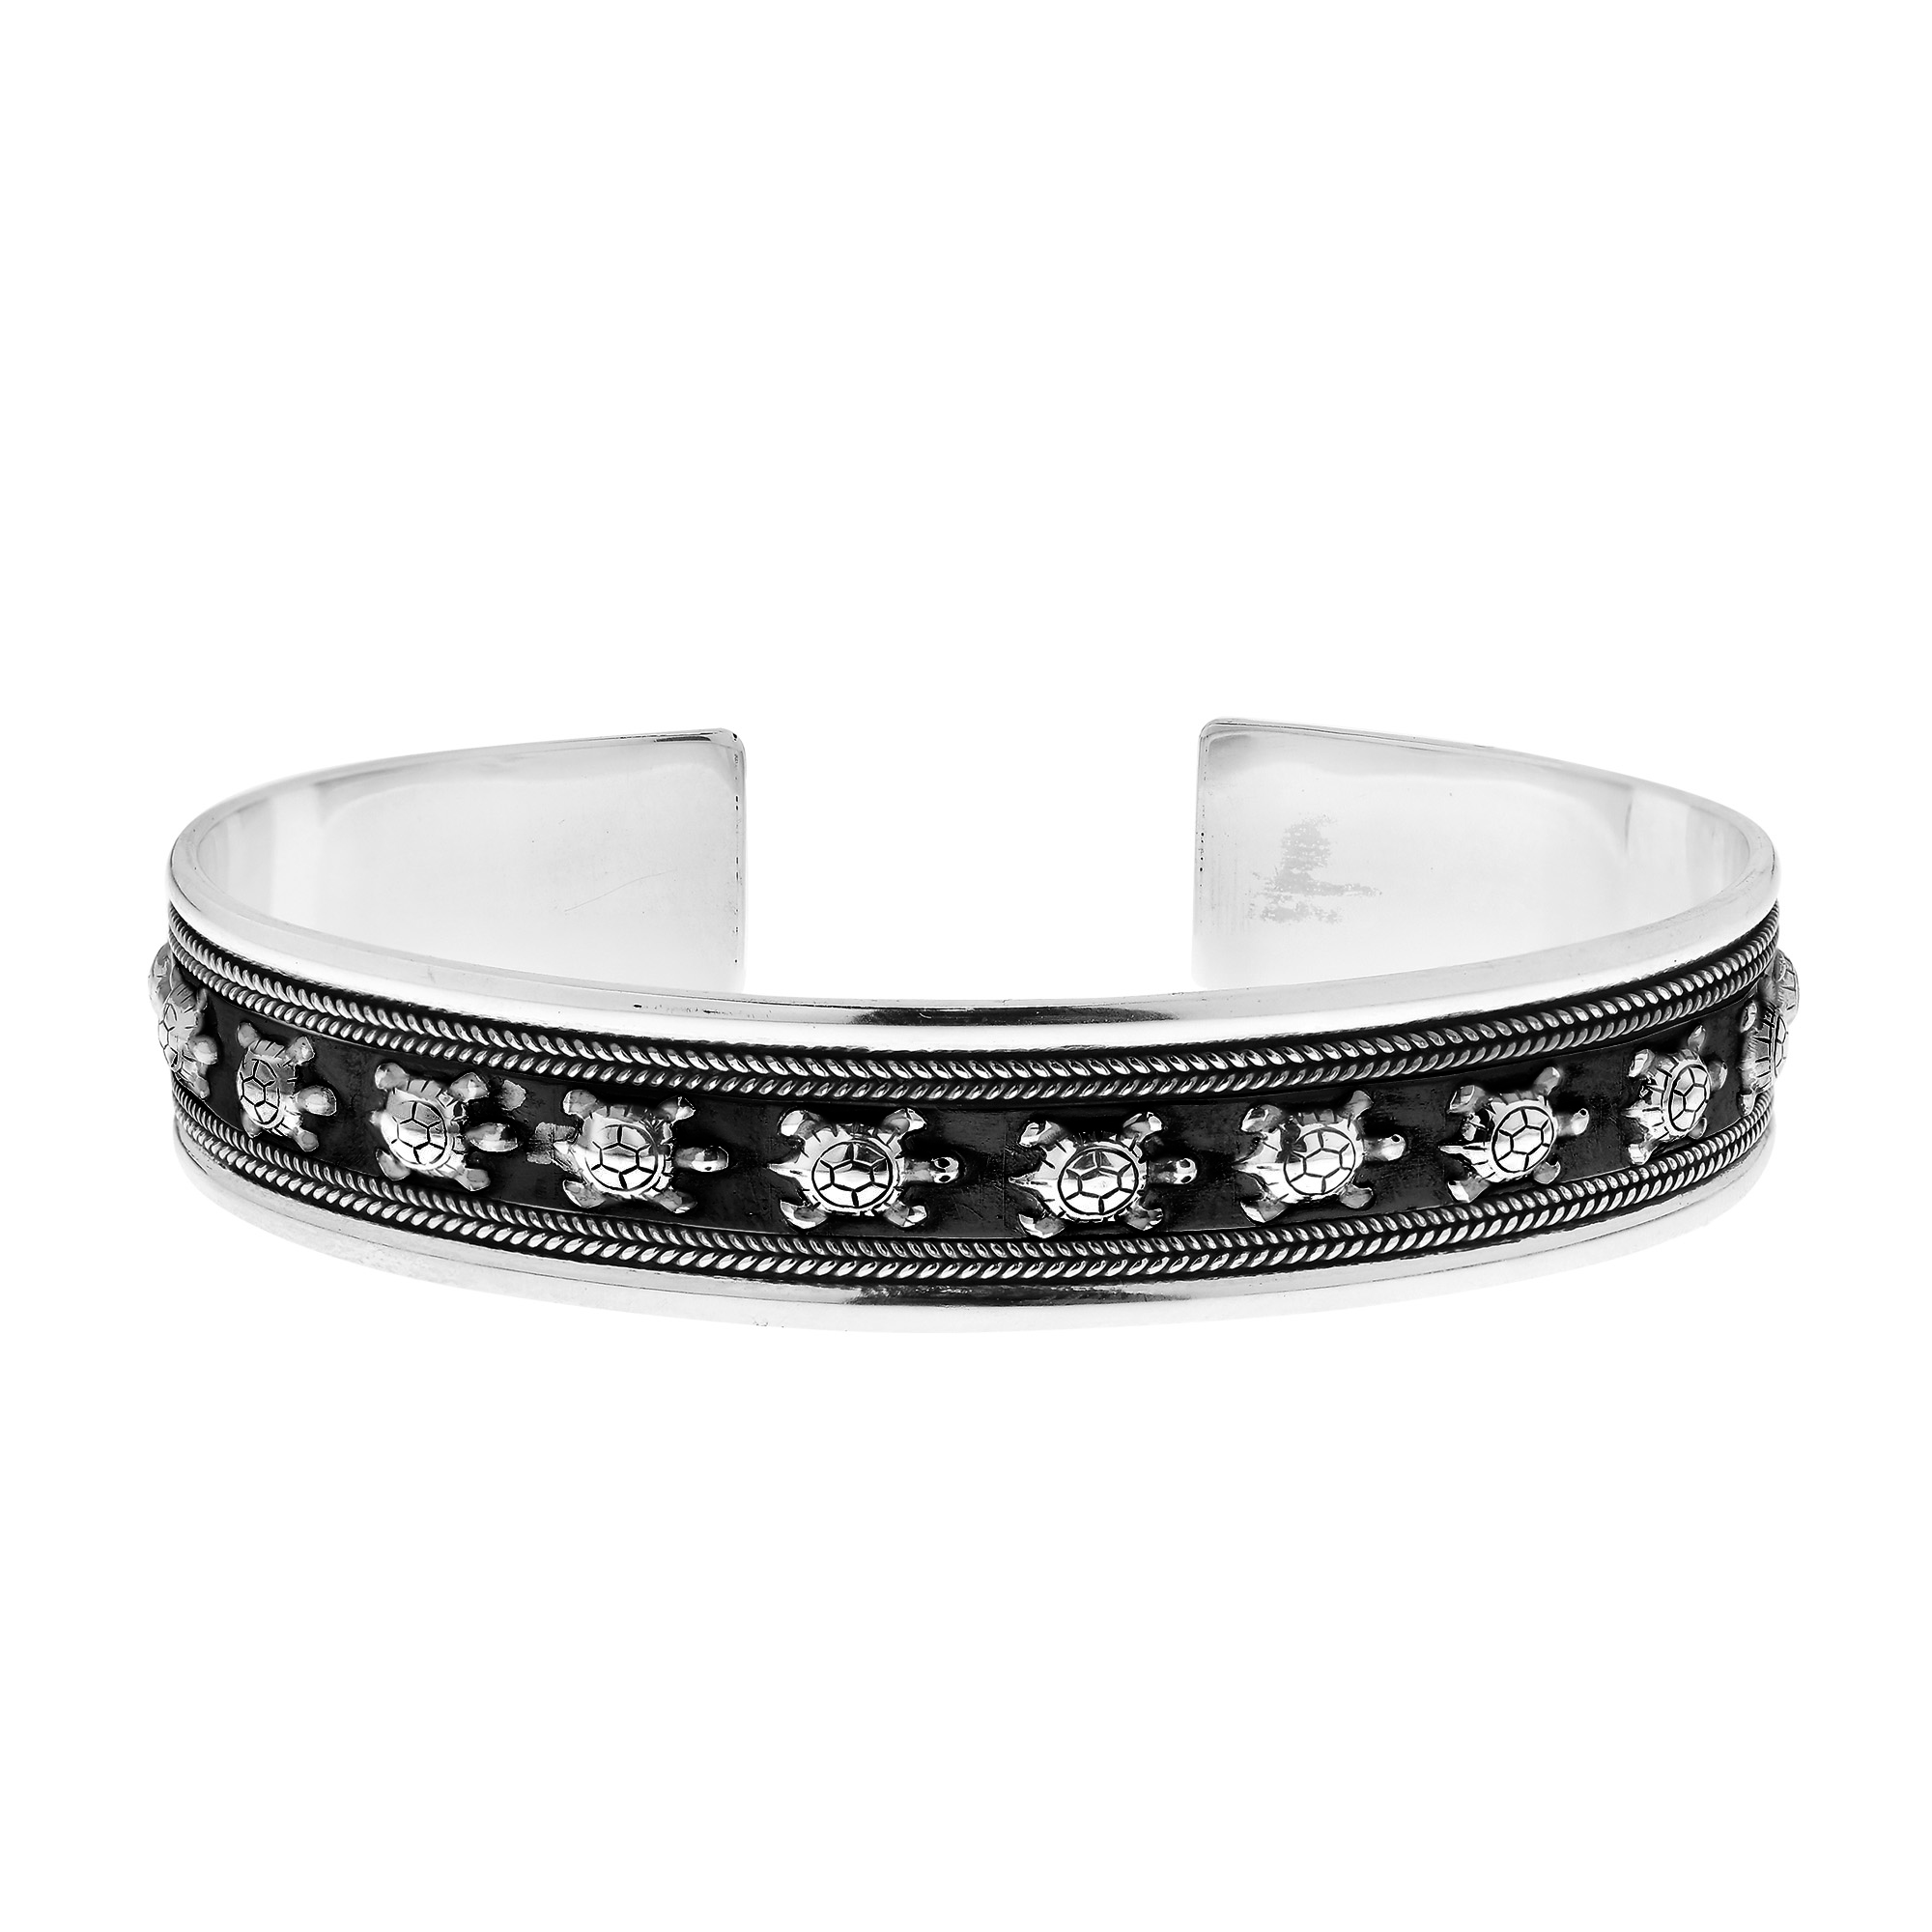 aeravida elegance double bangle interlocking two to style bangles your and heart details silver this some one the with pb hearts plain features symbolizing compelling a sterling bracelets products bracelet love add powerful romantic